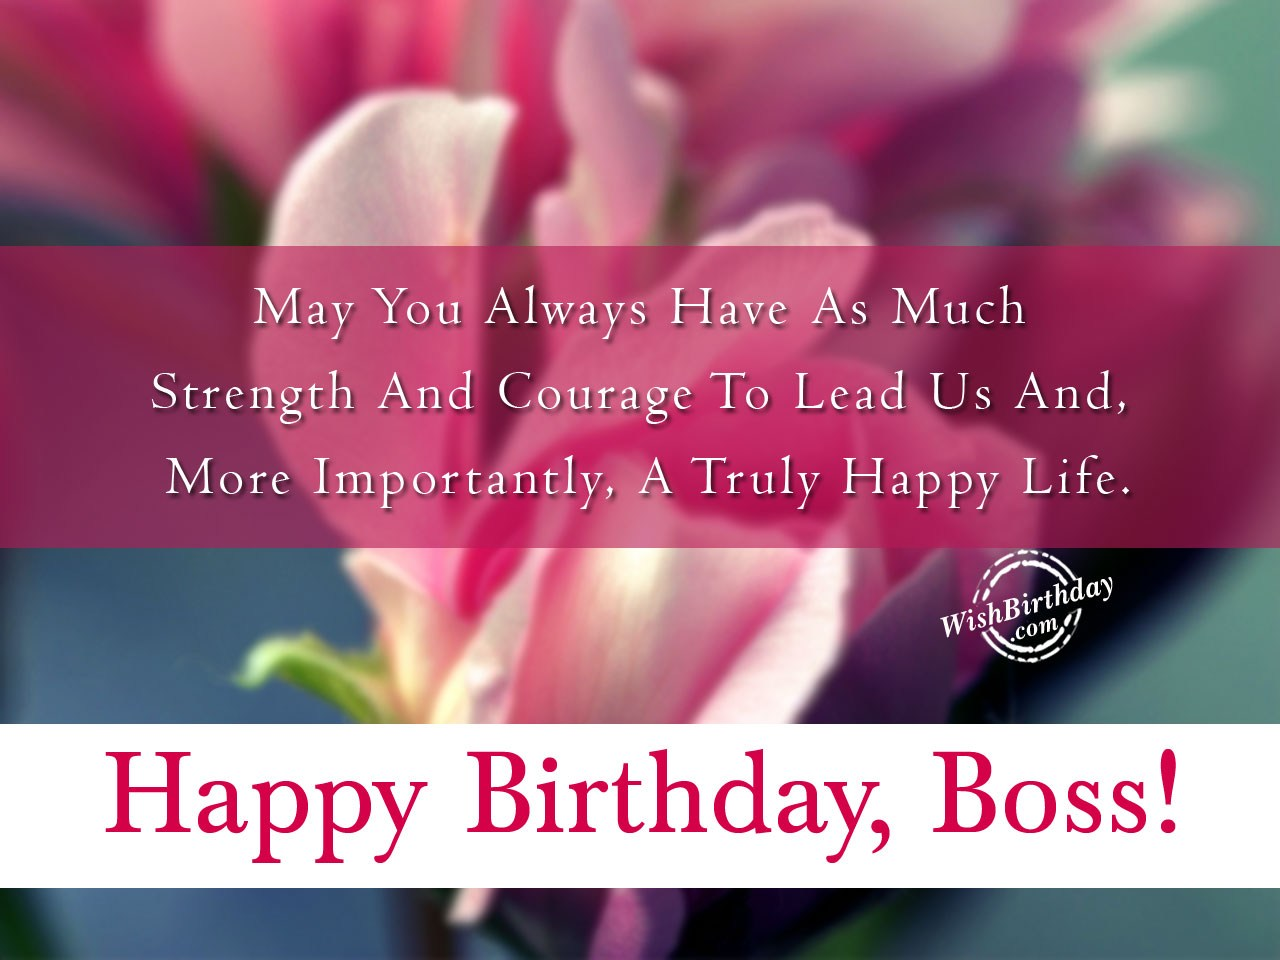 Birthday wishes for boss birthday images pictures a truly happy life m4hsunfo